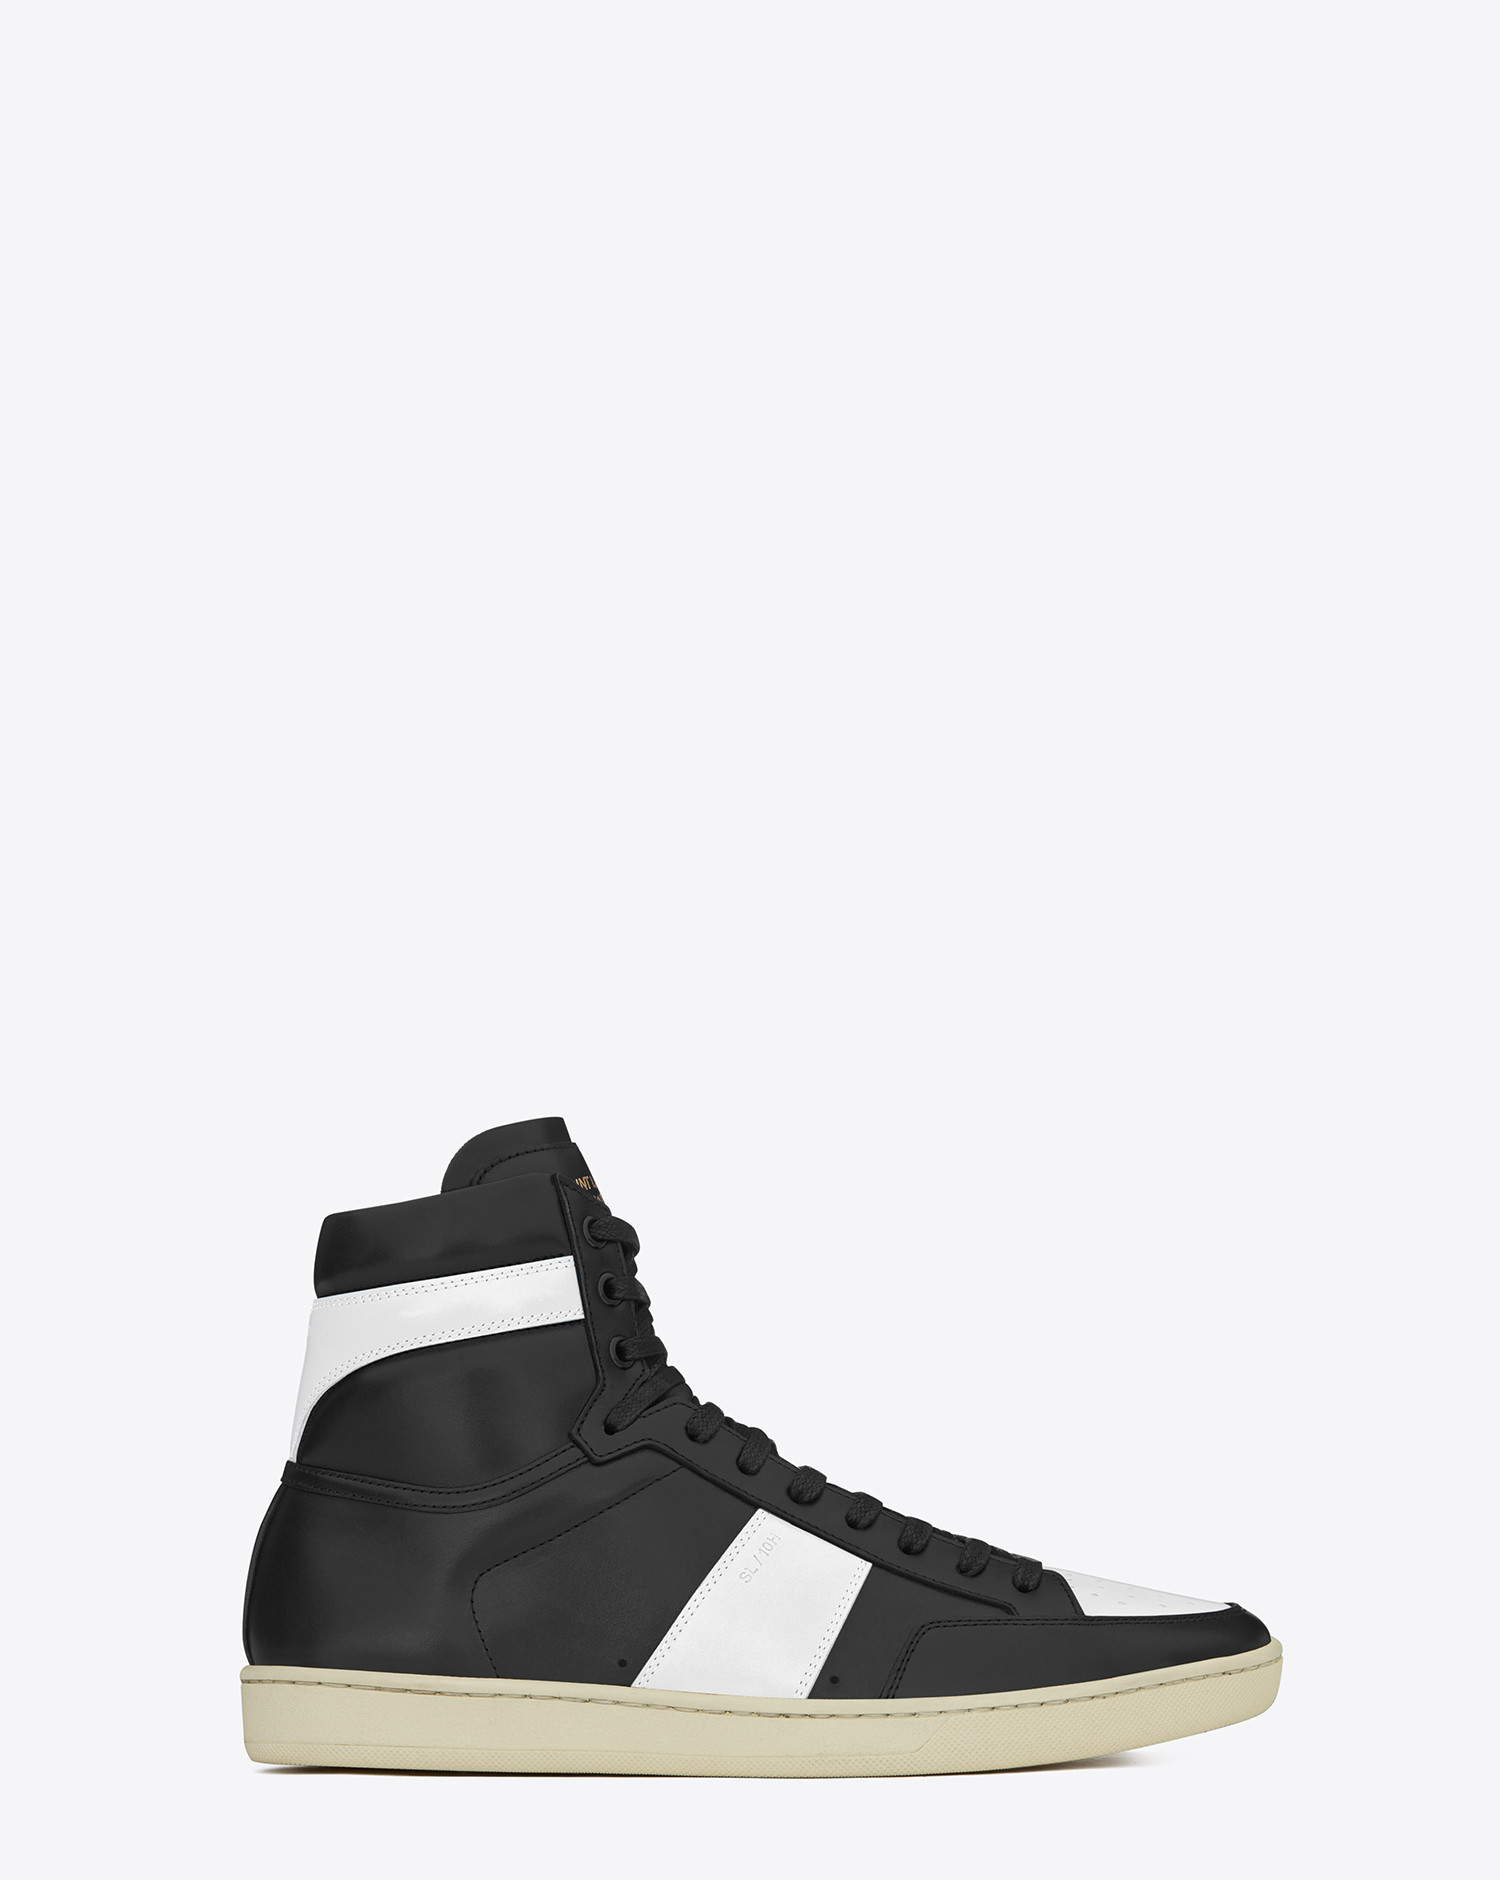 saint laurent signature court classic sl 10h high top sneaker in black and optic white leather. Black Bedroom Furniture Sets. Home Design Ideas